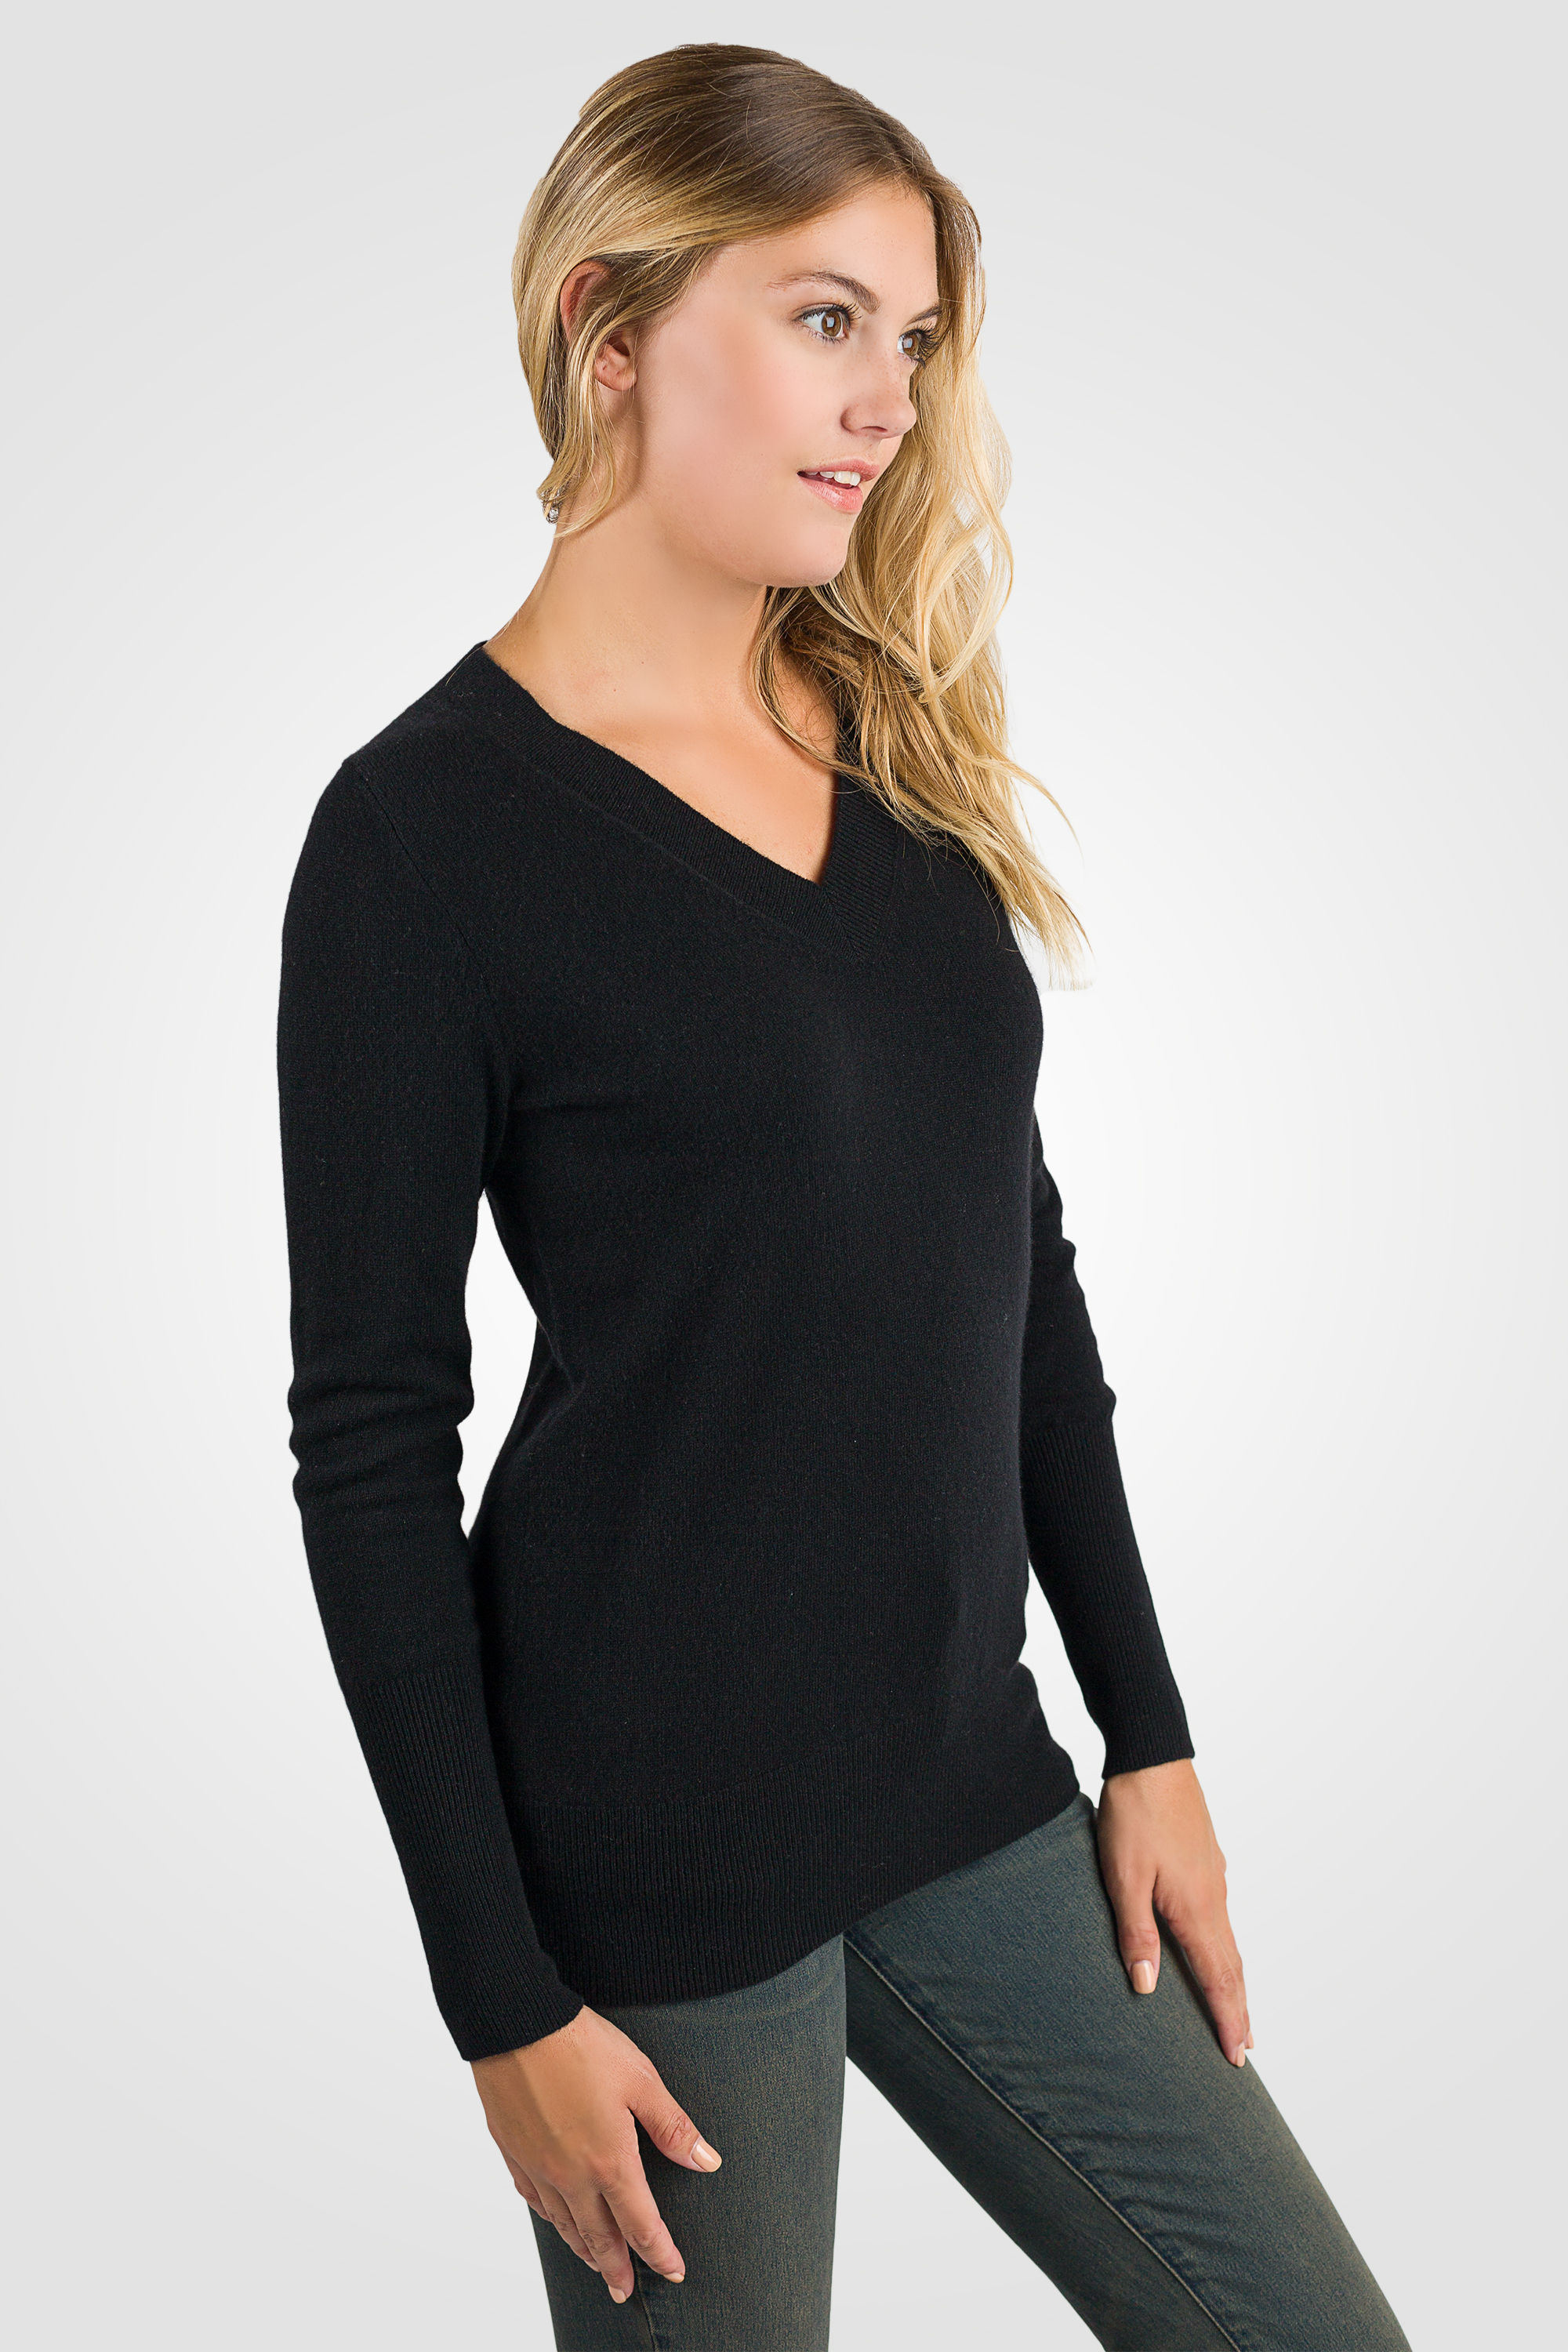 Black cashmere sweater ... black cashmere long sleeve ava v neck sweater right view ... IZAWRBS